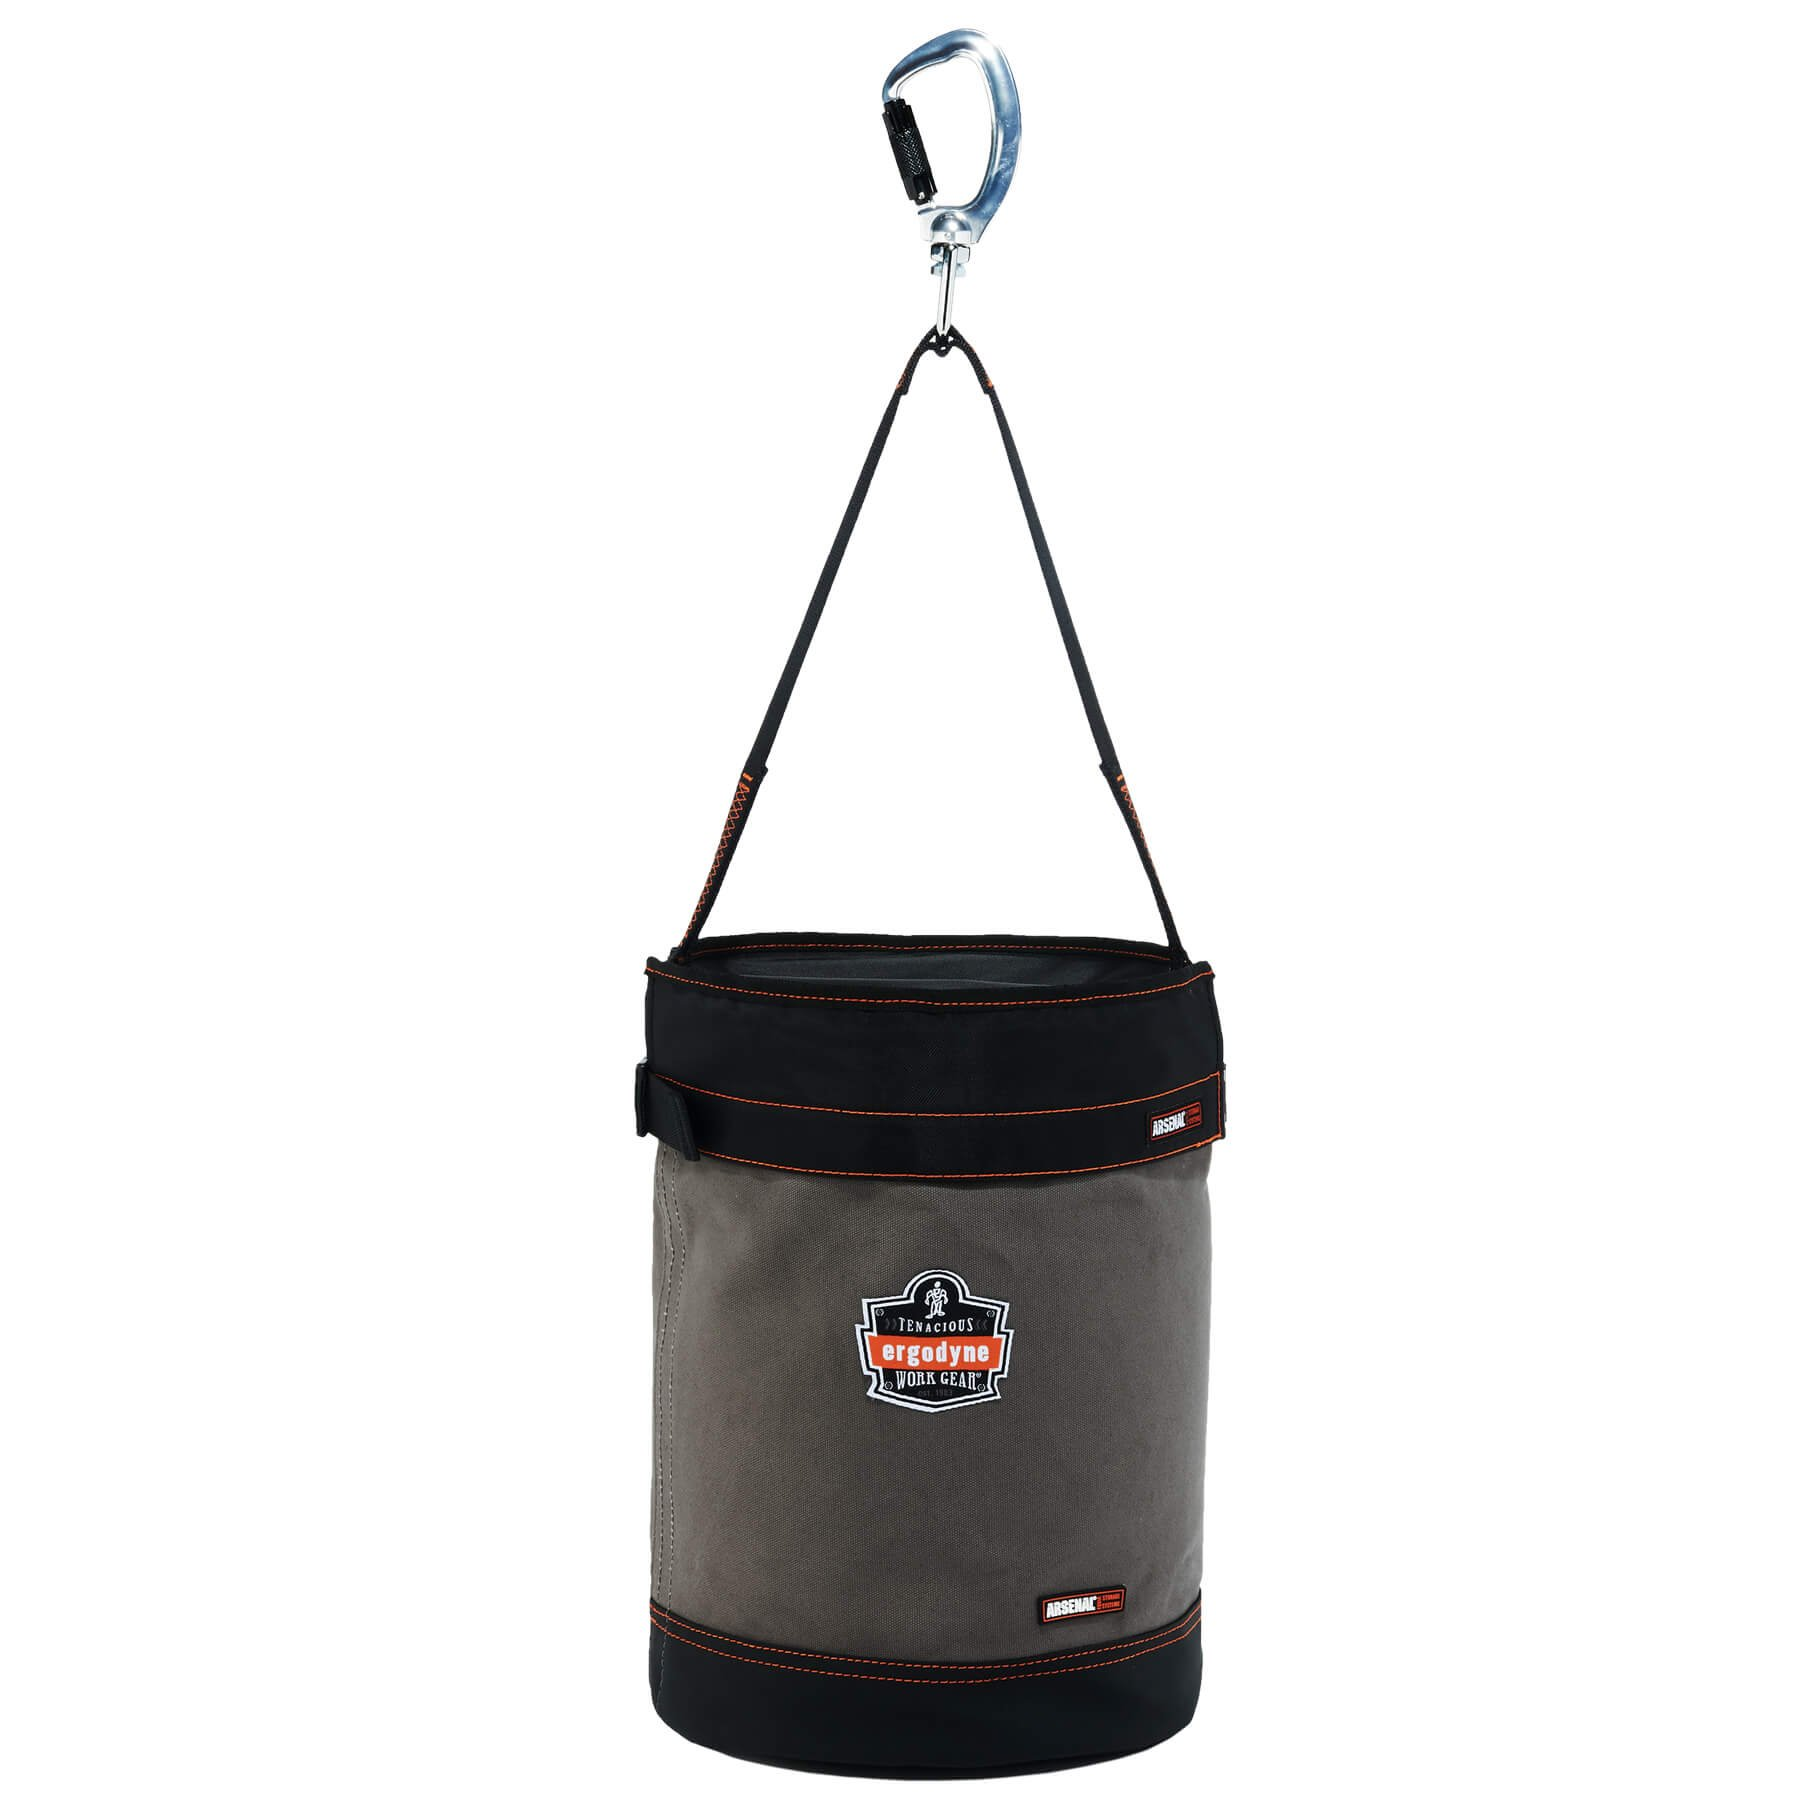 Ergodyne Arsenal 5940T Large Canvas Tool Bucket with Cover, Gray